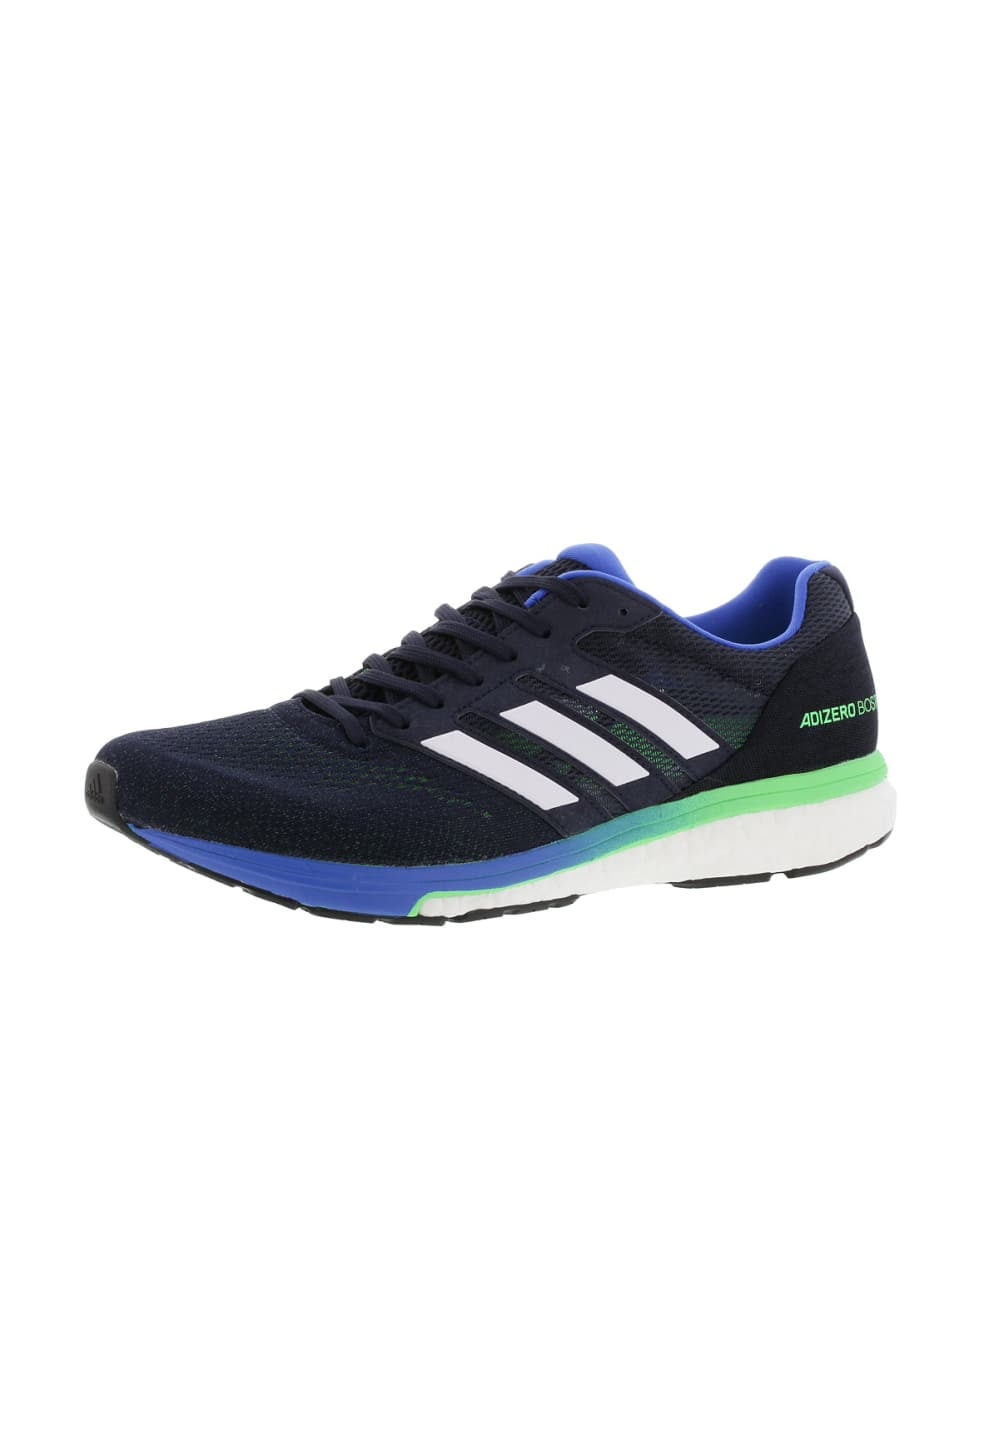 release date: 39e91 b8bc5 adidas Adizero Boston 7 - Running shoes for Men - Blue